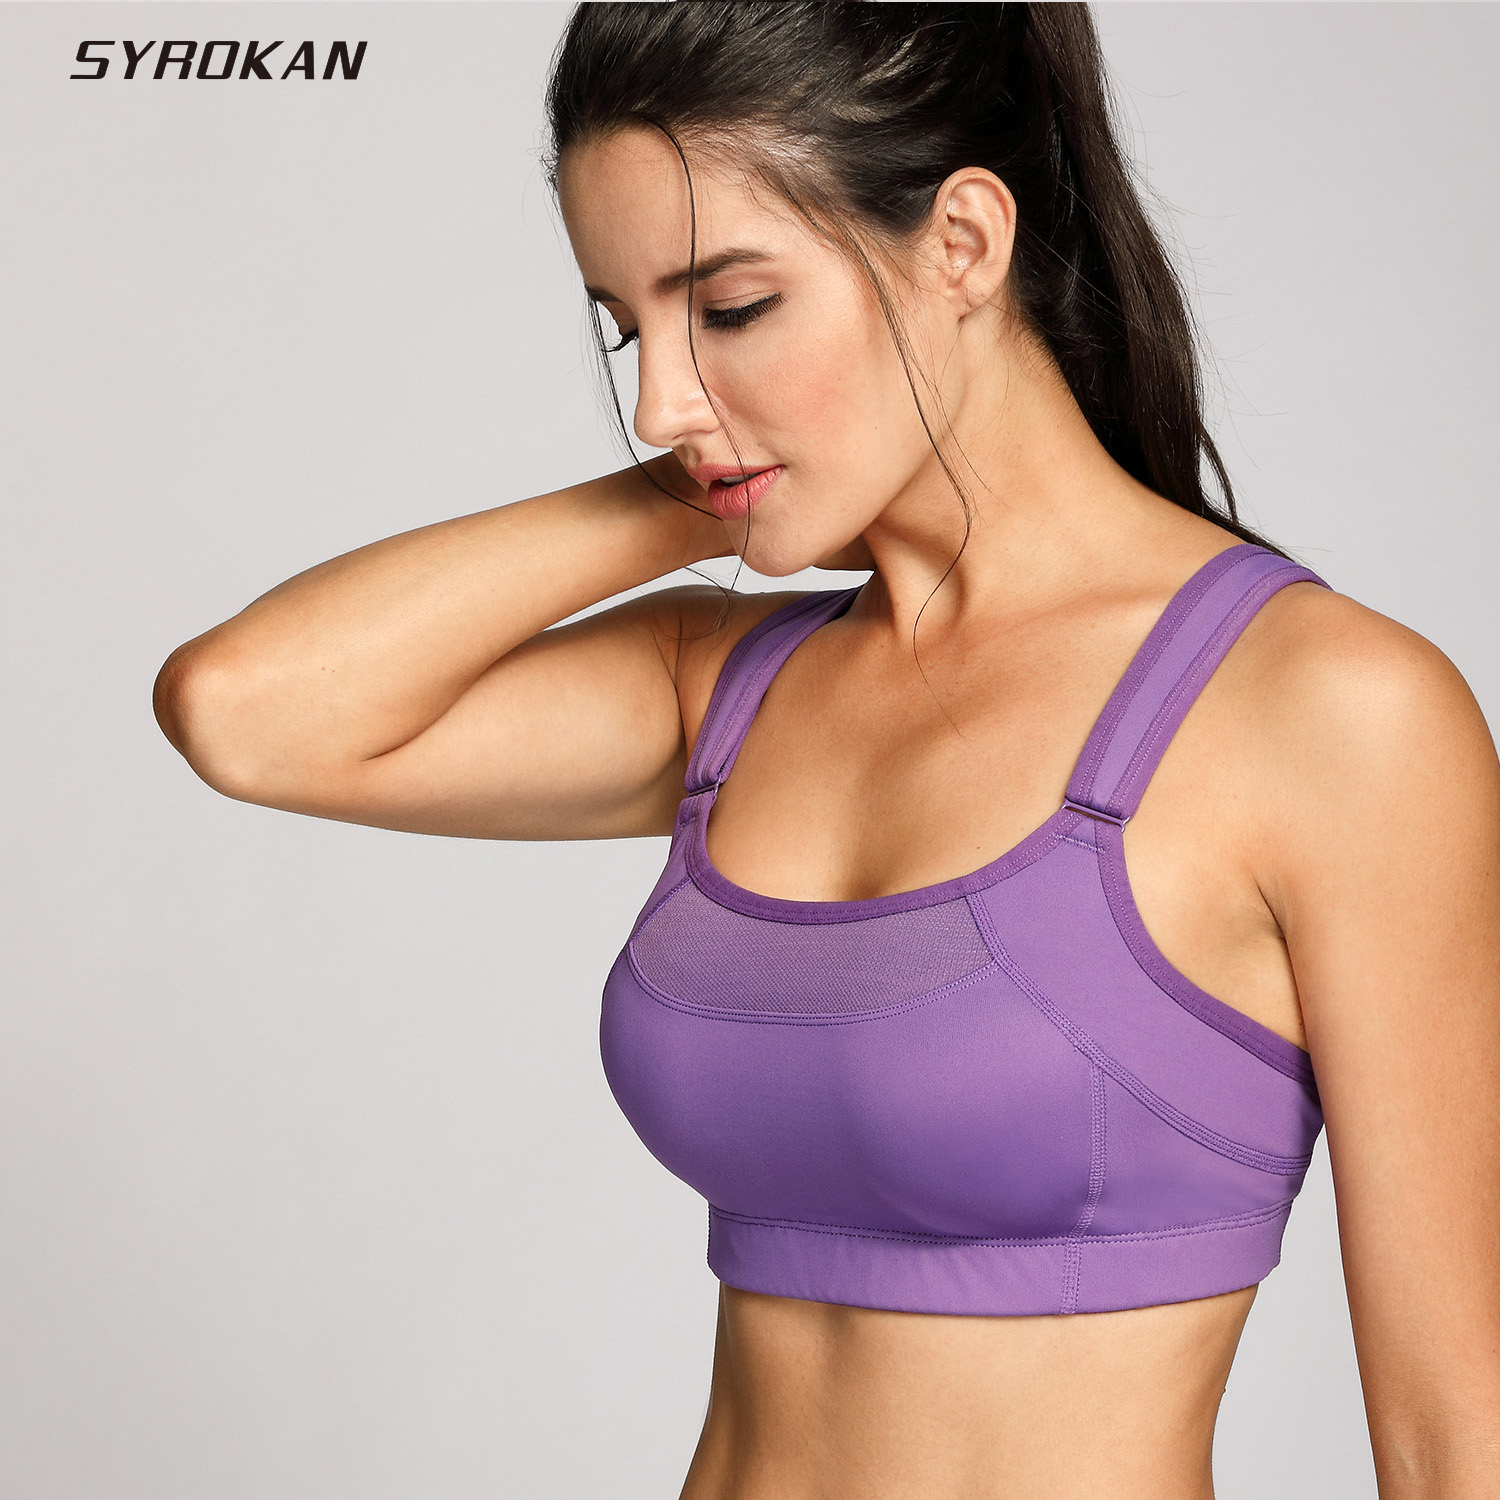 SYROKAN Women's Bounce Control Wirefree Maximum Support High Impact Sports Bra